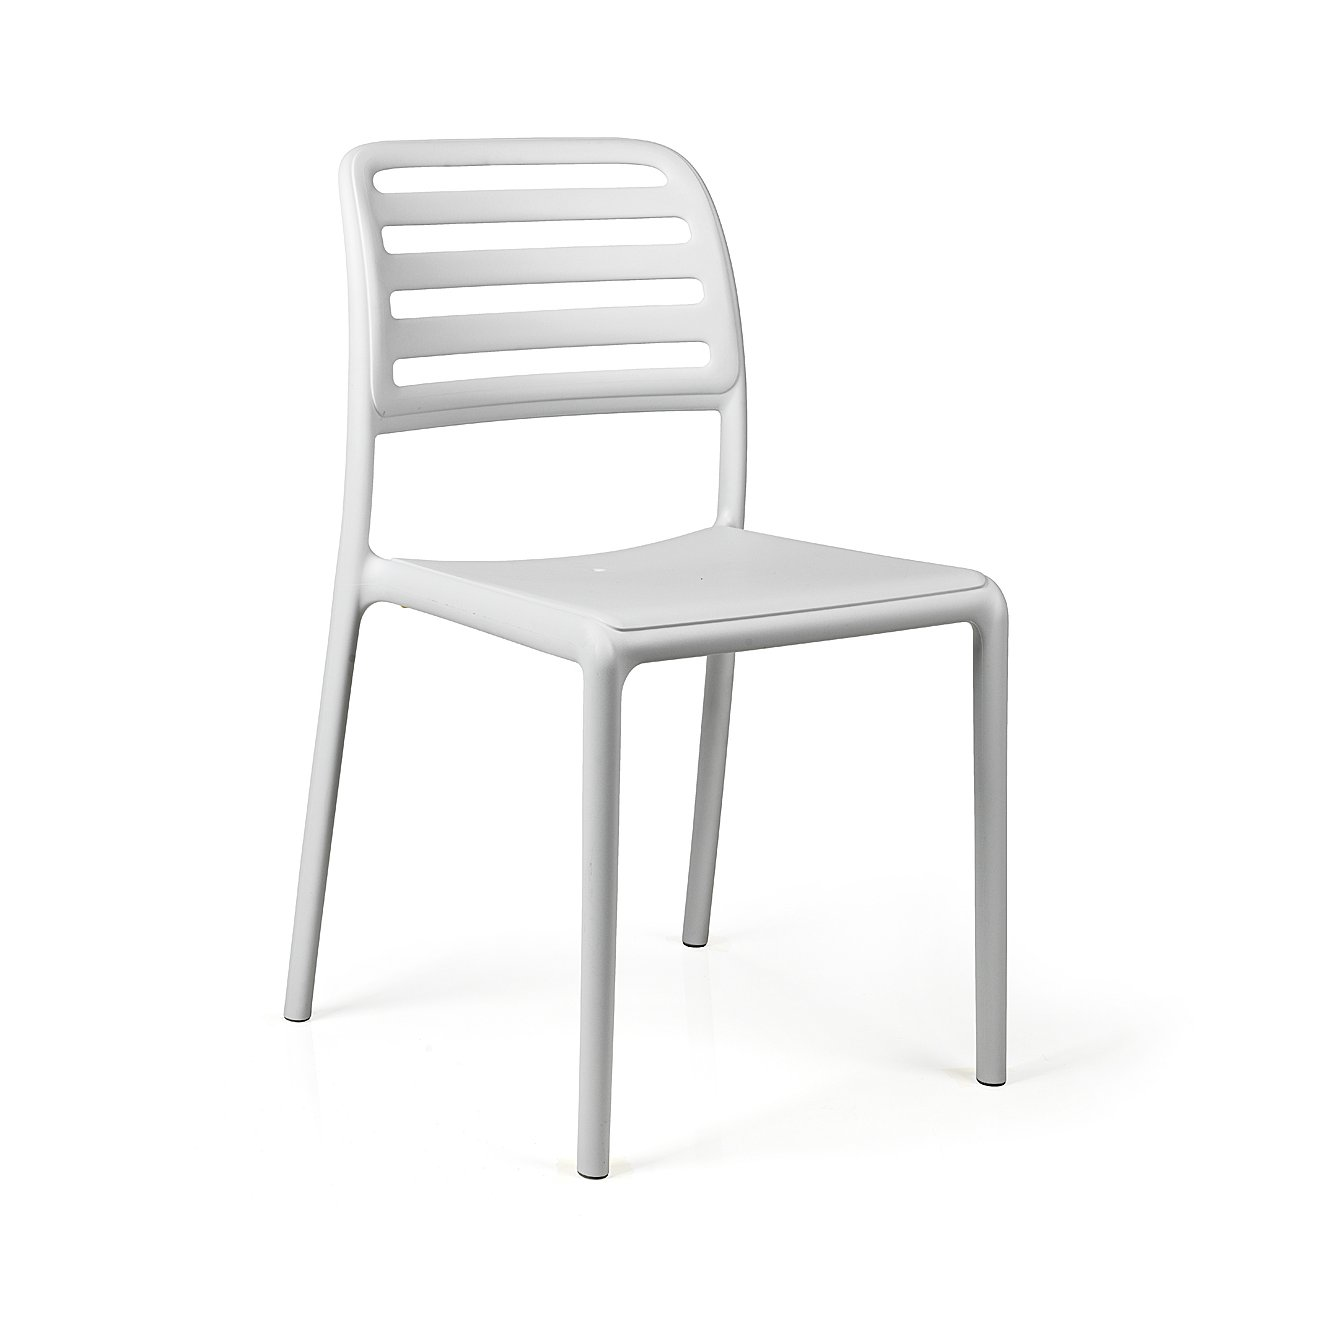 Costa Bistro Chair - White